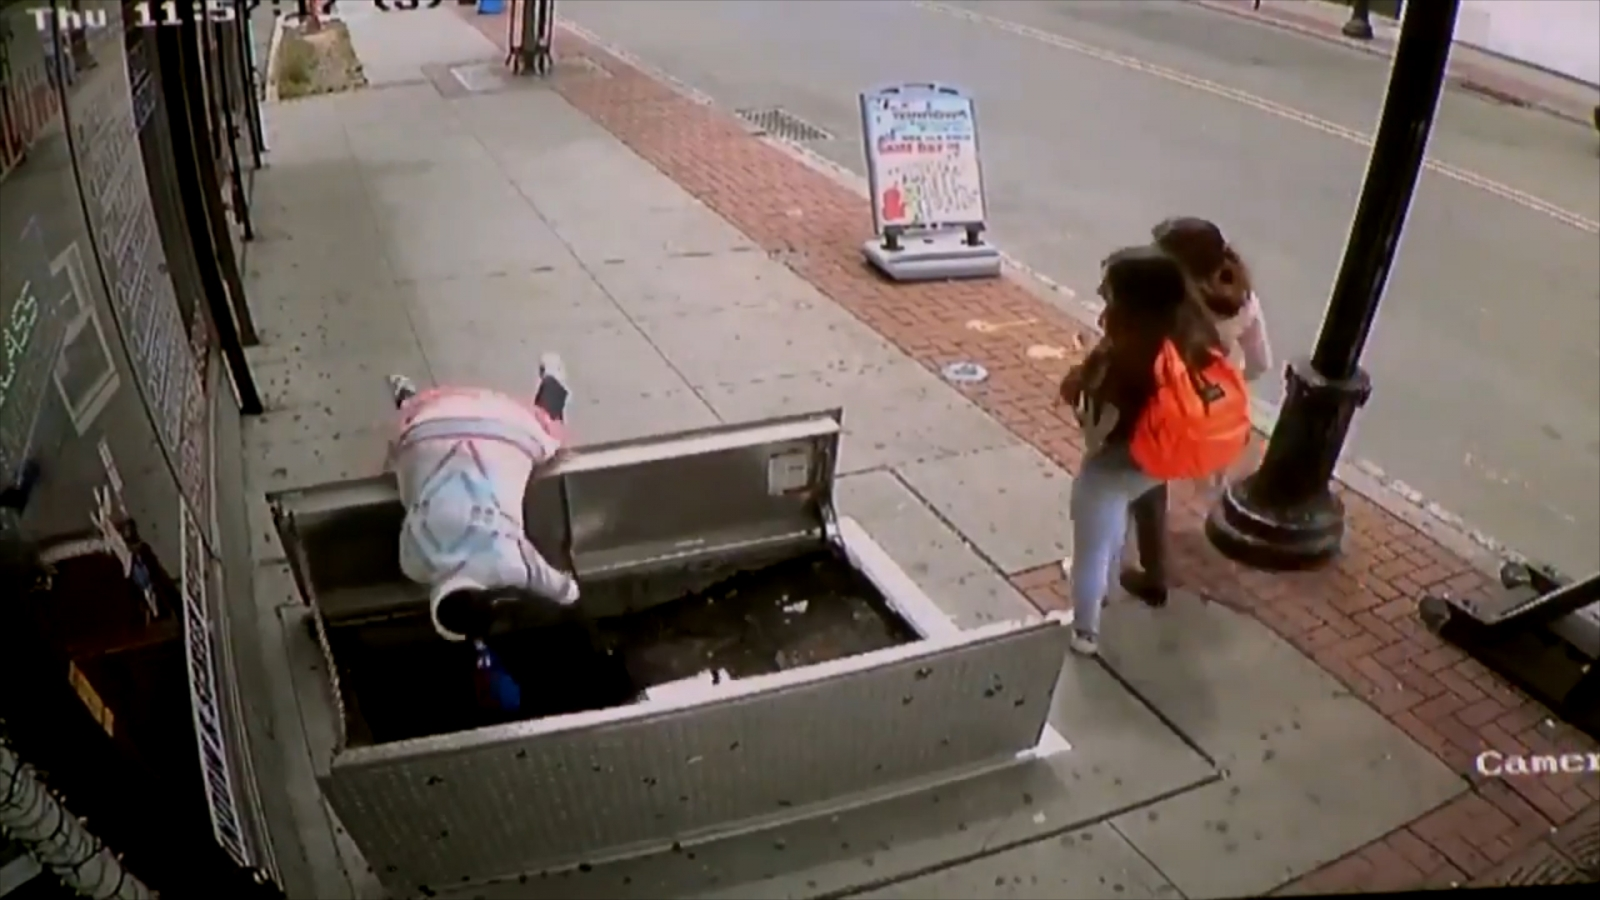 Cctv Footage Shows Woman In Fall Through Basement Doors In